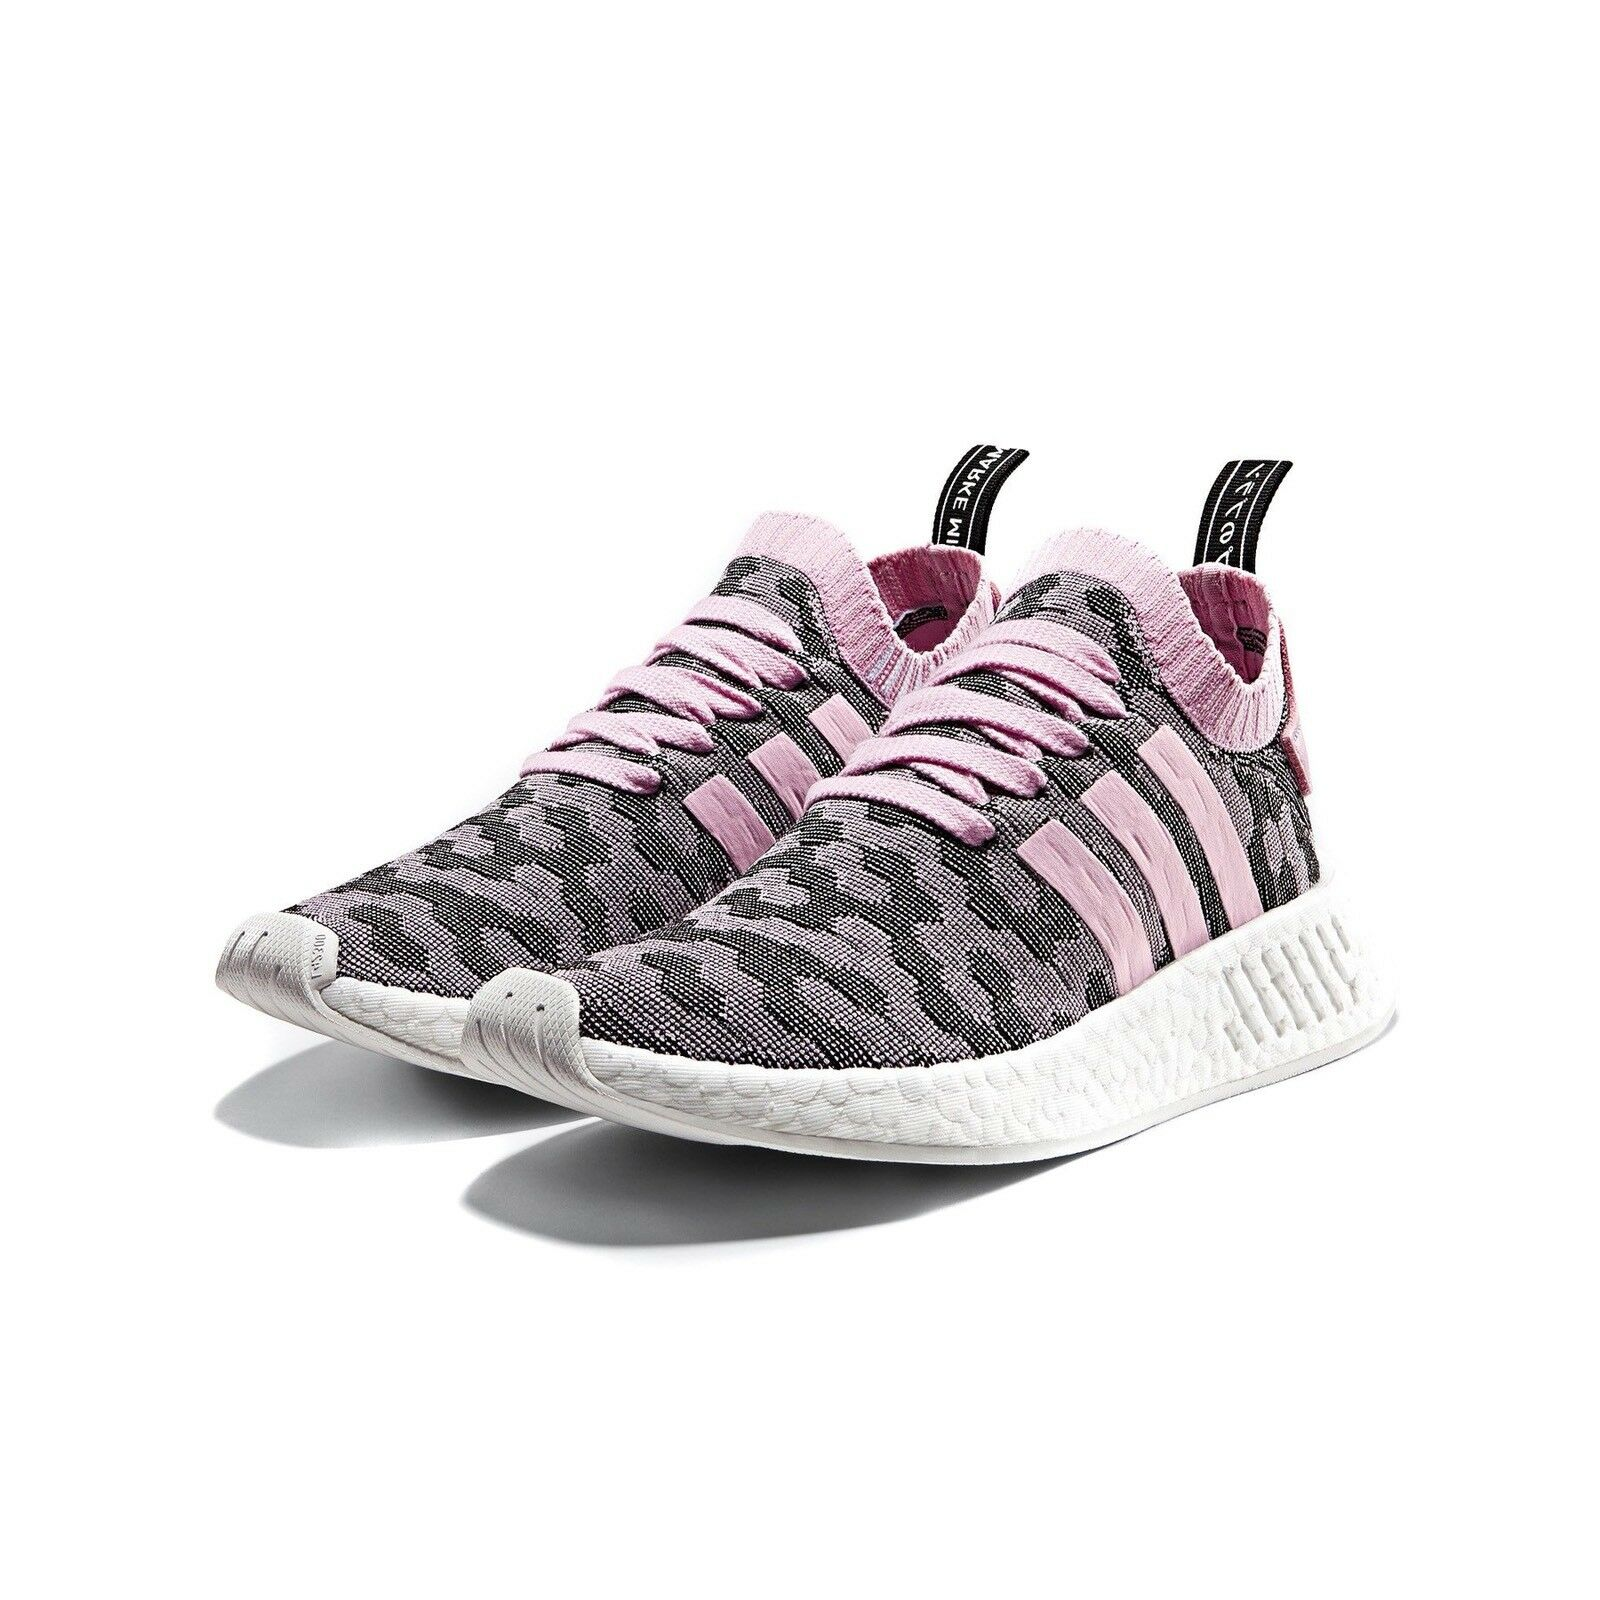 new products f2221 aabee Adidas Women s NMD R2 NMD R2 NMD R2 PRIMEKNIT SHOES NEW AUTHENTIC Wonder Pink  BY9521 Size 10 de1f92